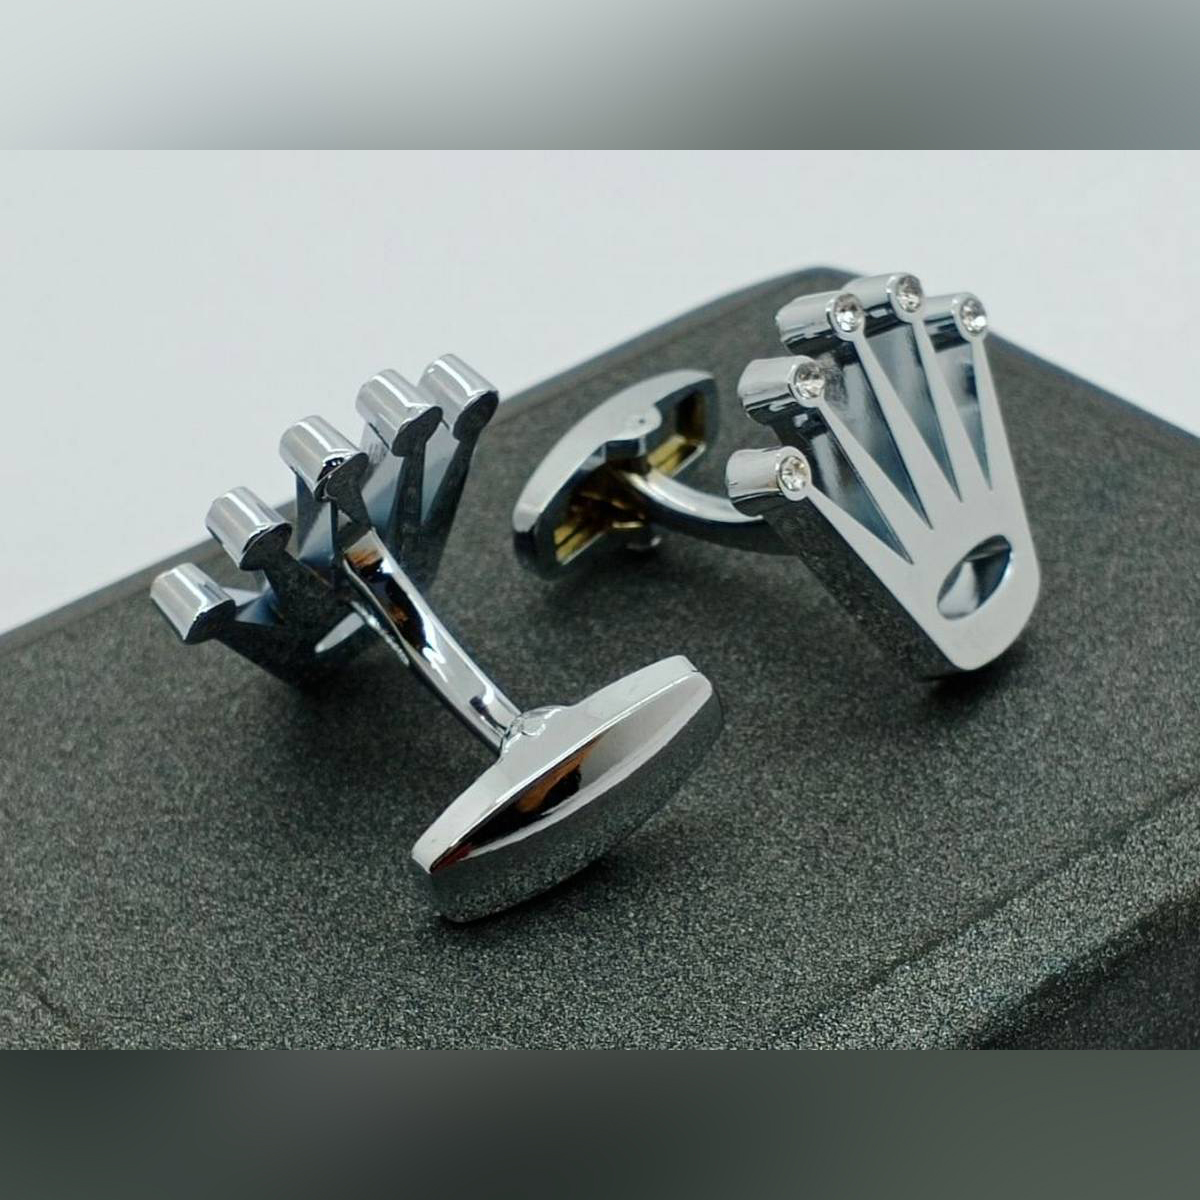 Silver Crown Cufflink For Men Golden with Black Studs Office Party & Casual Wear